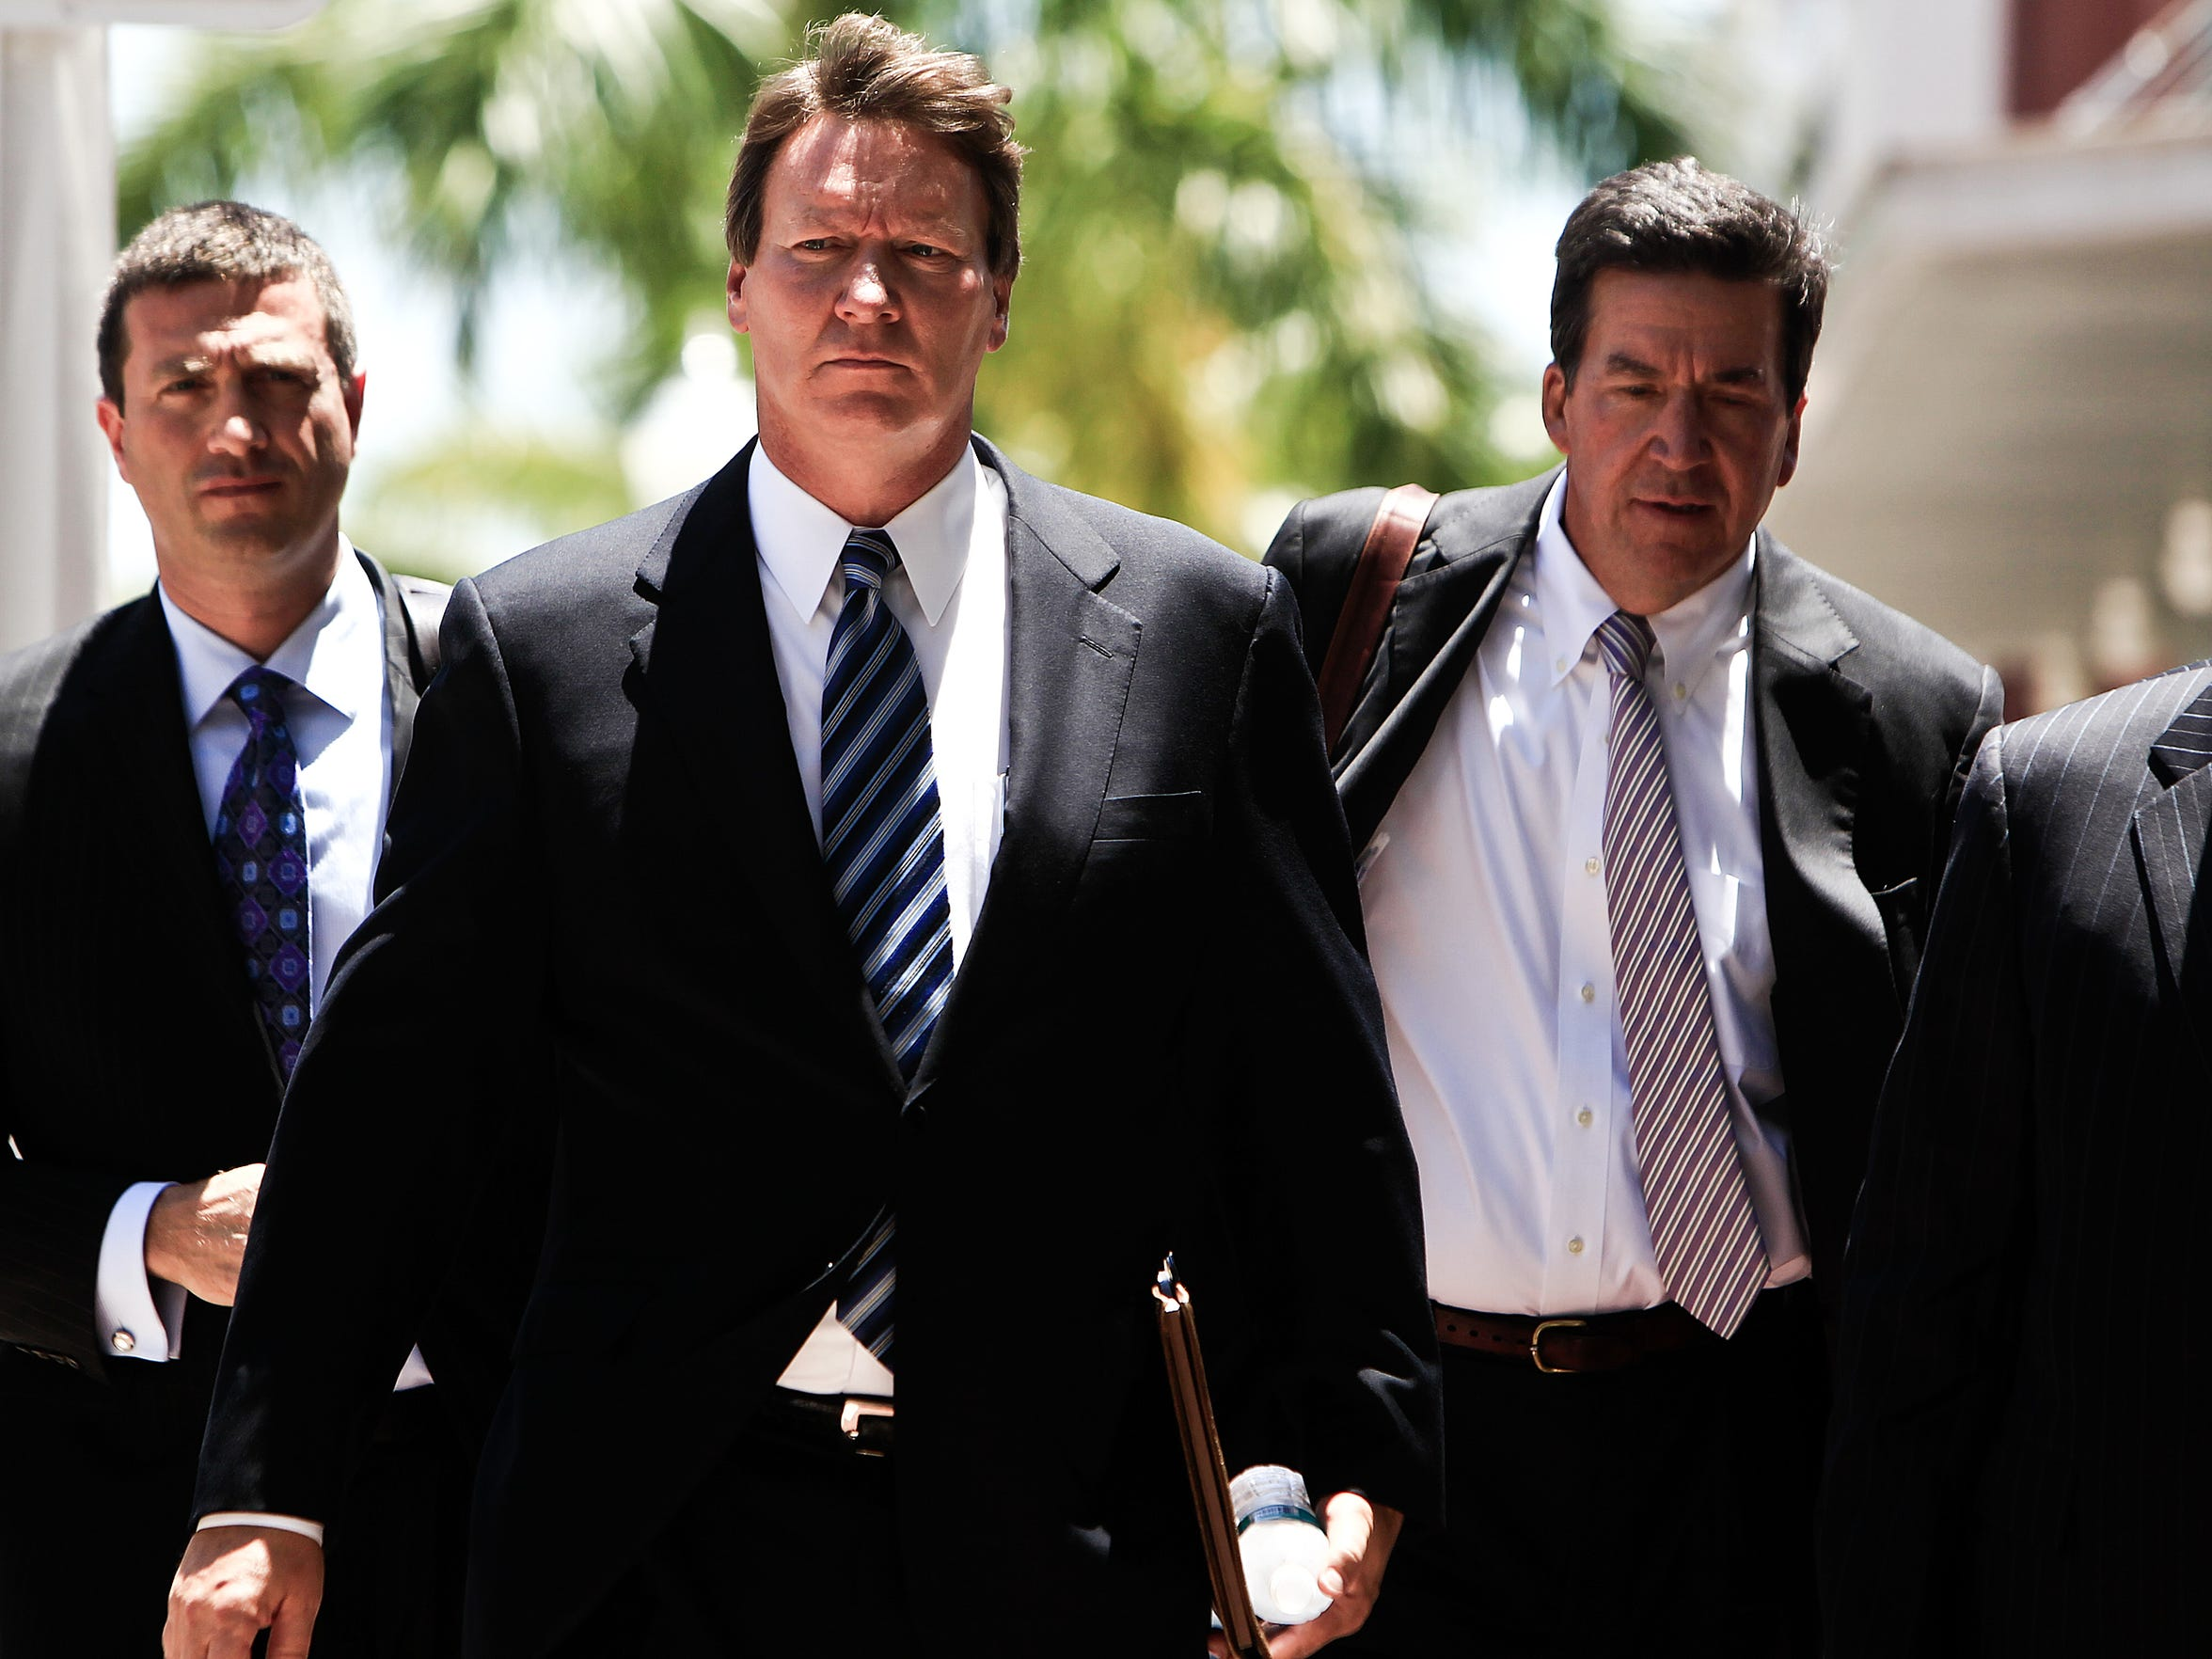 Jerry Williams, the ex-CEO of Orion Bank, second from left, walks into his sentencing at the federal courthouse in Fort Myers on Tuesday June 12, 2012.